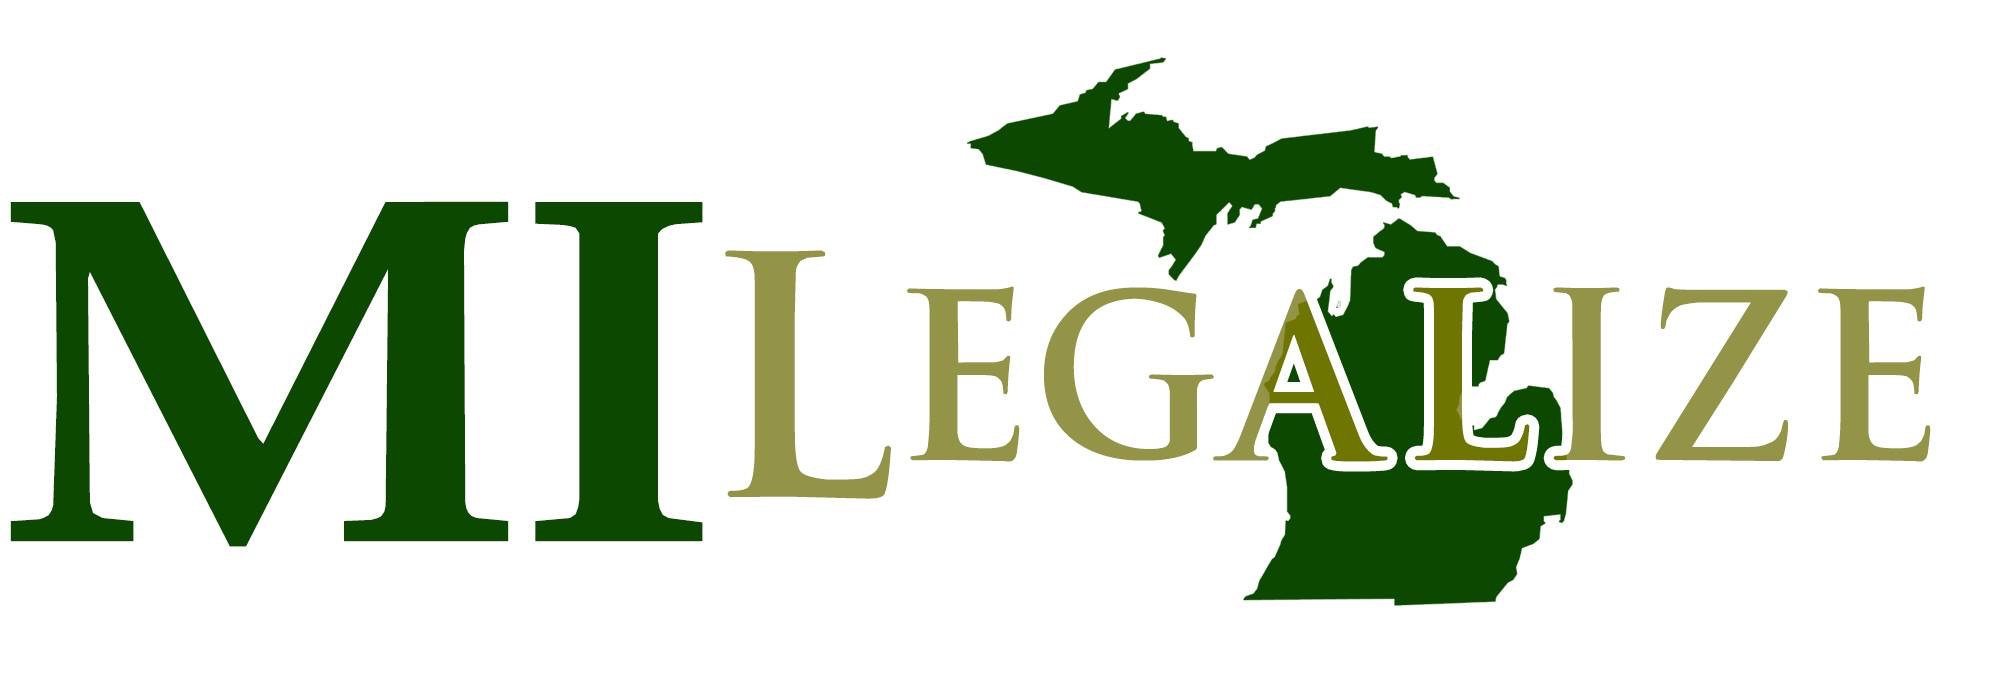 MI Legalize is the people's movement to legalize marijuana in Michigan in 2018. In June of 2016, MI Legalize submitted more than 350,000 signatures to place the issue of marijuana legalization before the voters of Michigan. Unfortunately, in a legally questionable move by Michigan's Bureau of Elections, roughly half of the signatures submitted were not counted. However, MI Legalize is back and regrouping for the 2018 Midterm election. MI Legalize is setting our sights on the 2018 Midterm election.